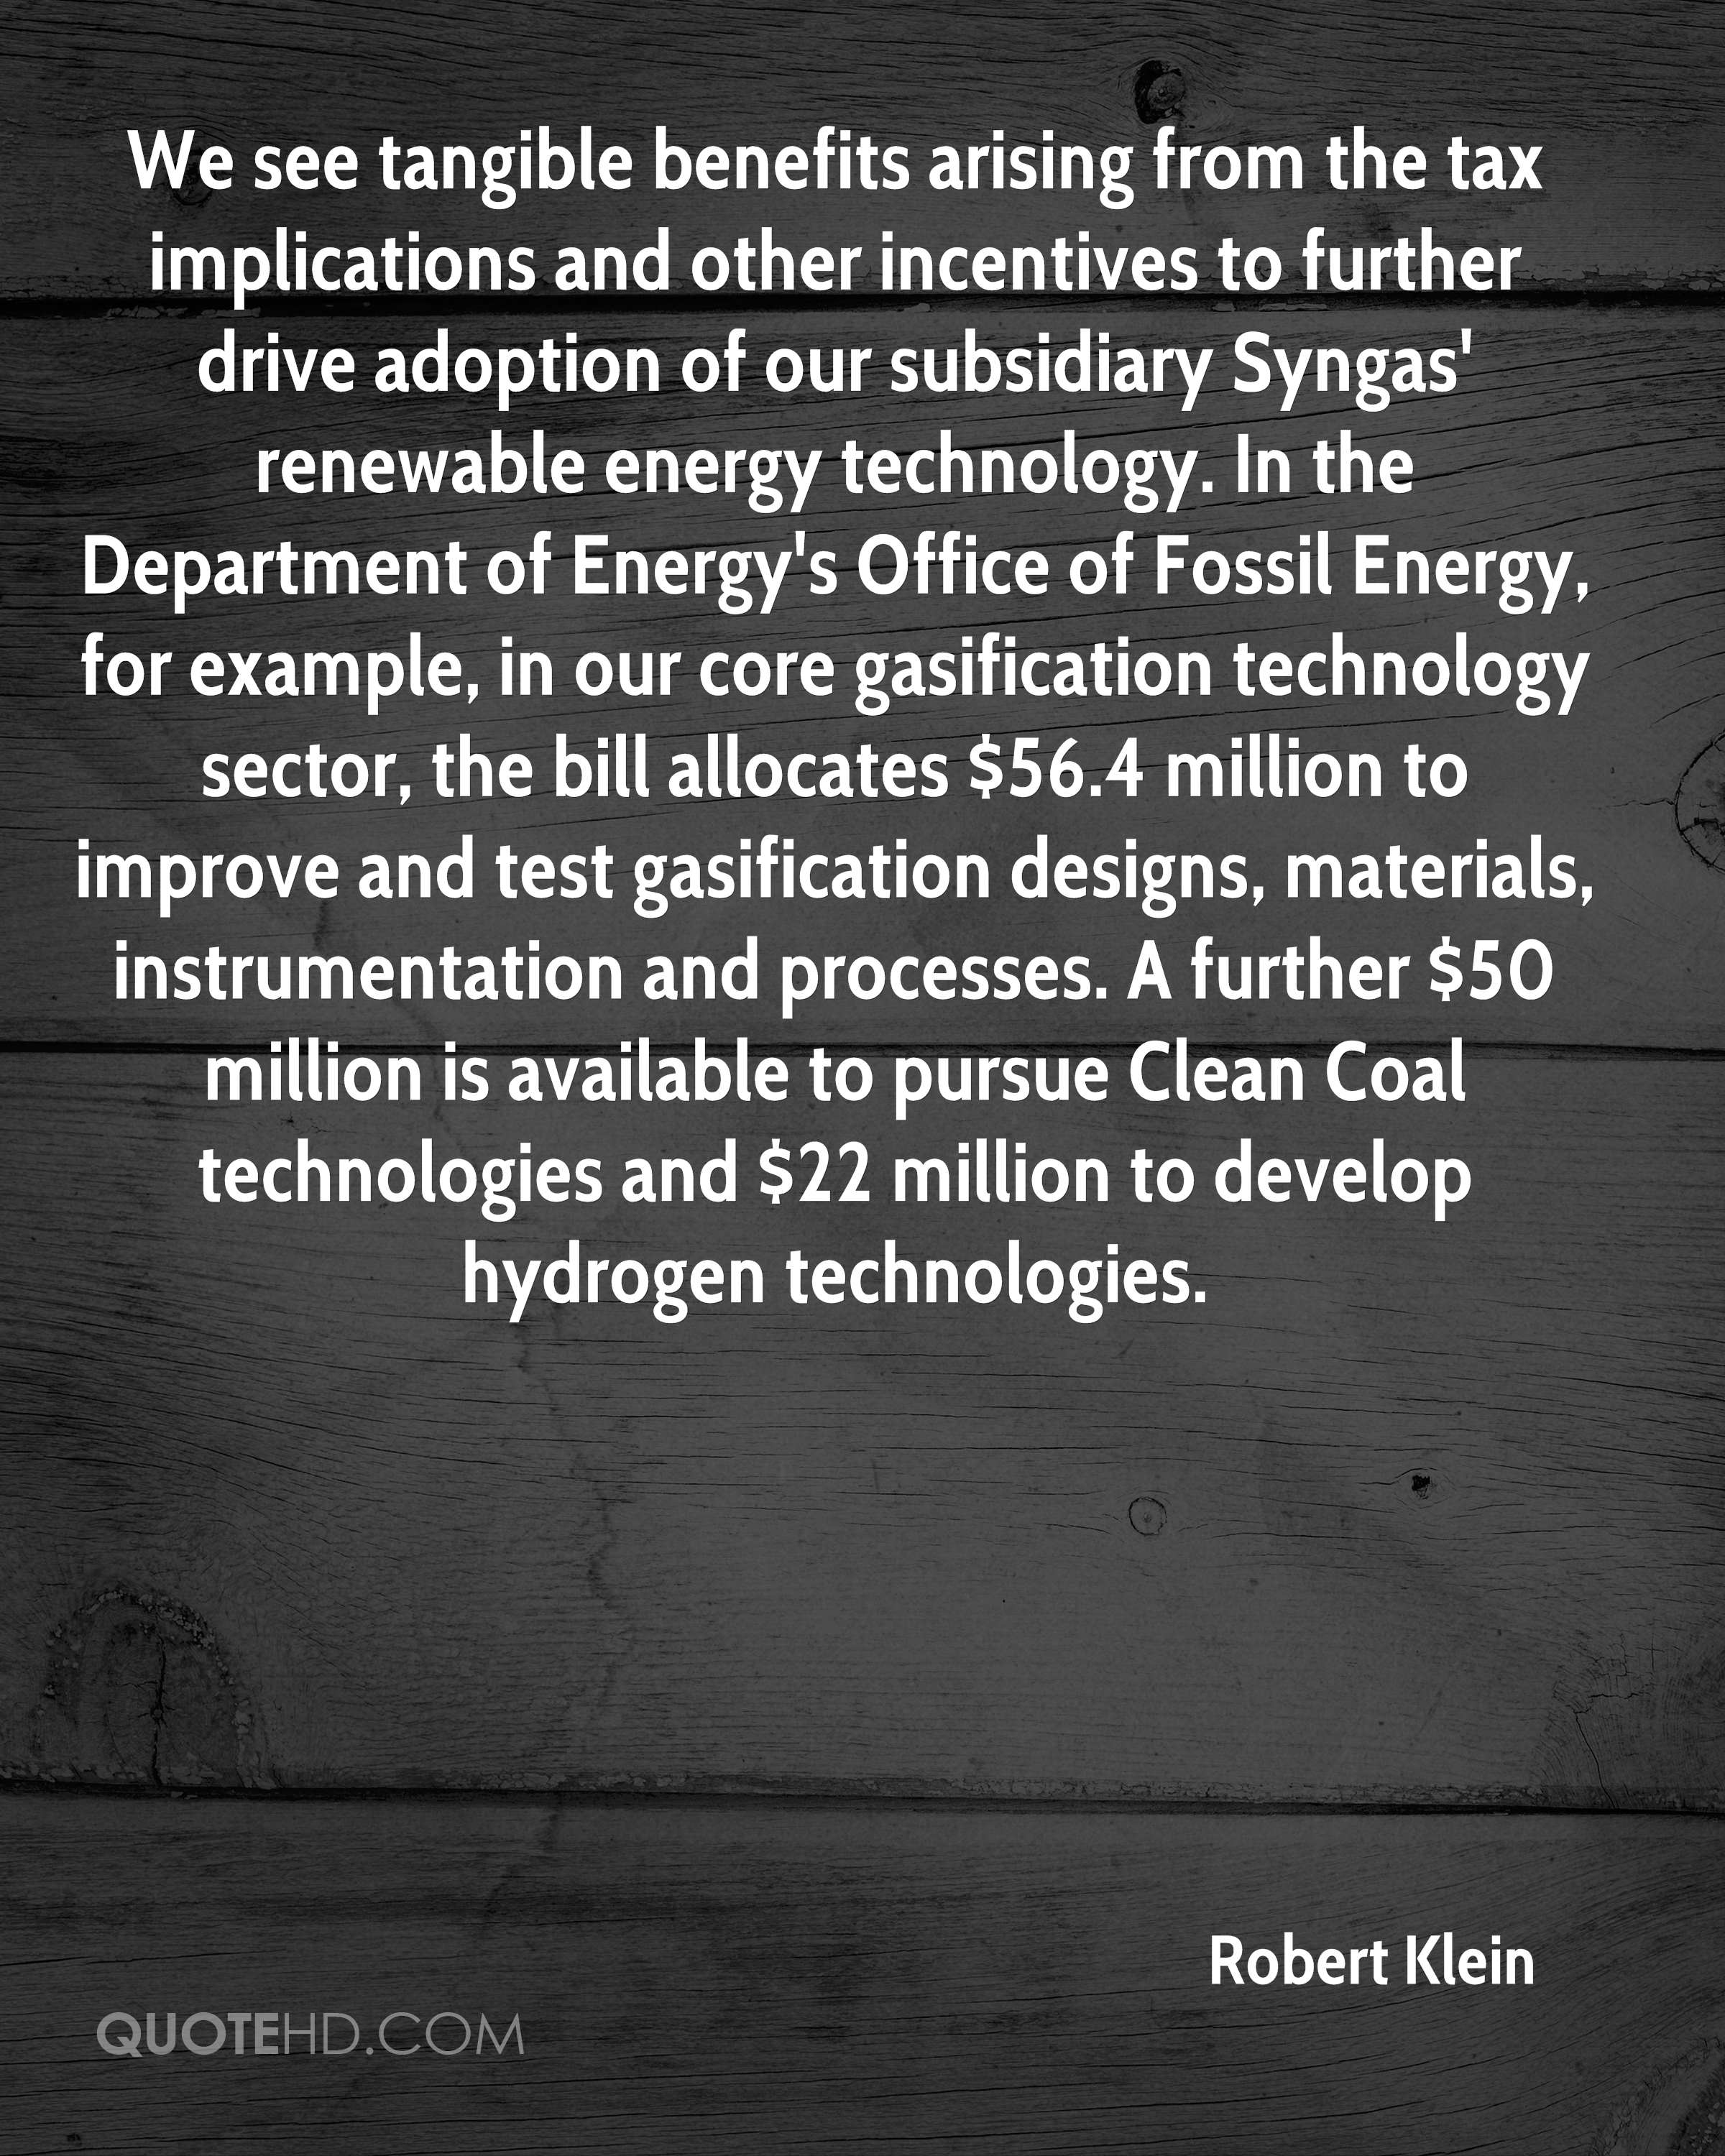 We see tangible benefits arising from the tax implications and other incentives to further drive adoption of our subsidiary Syngas' renewable energy technology. In the Department of Energy's Office of Fossil Energy, for example, in our core gasification technology sector, the bill allocates $56.4 million to improve and test gasification designs, materials, instrumentation and processes. A further $50 million is available to pursue Clean Coal technologies and $22 million to develop hydrogen technologies.